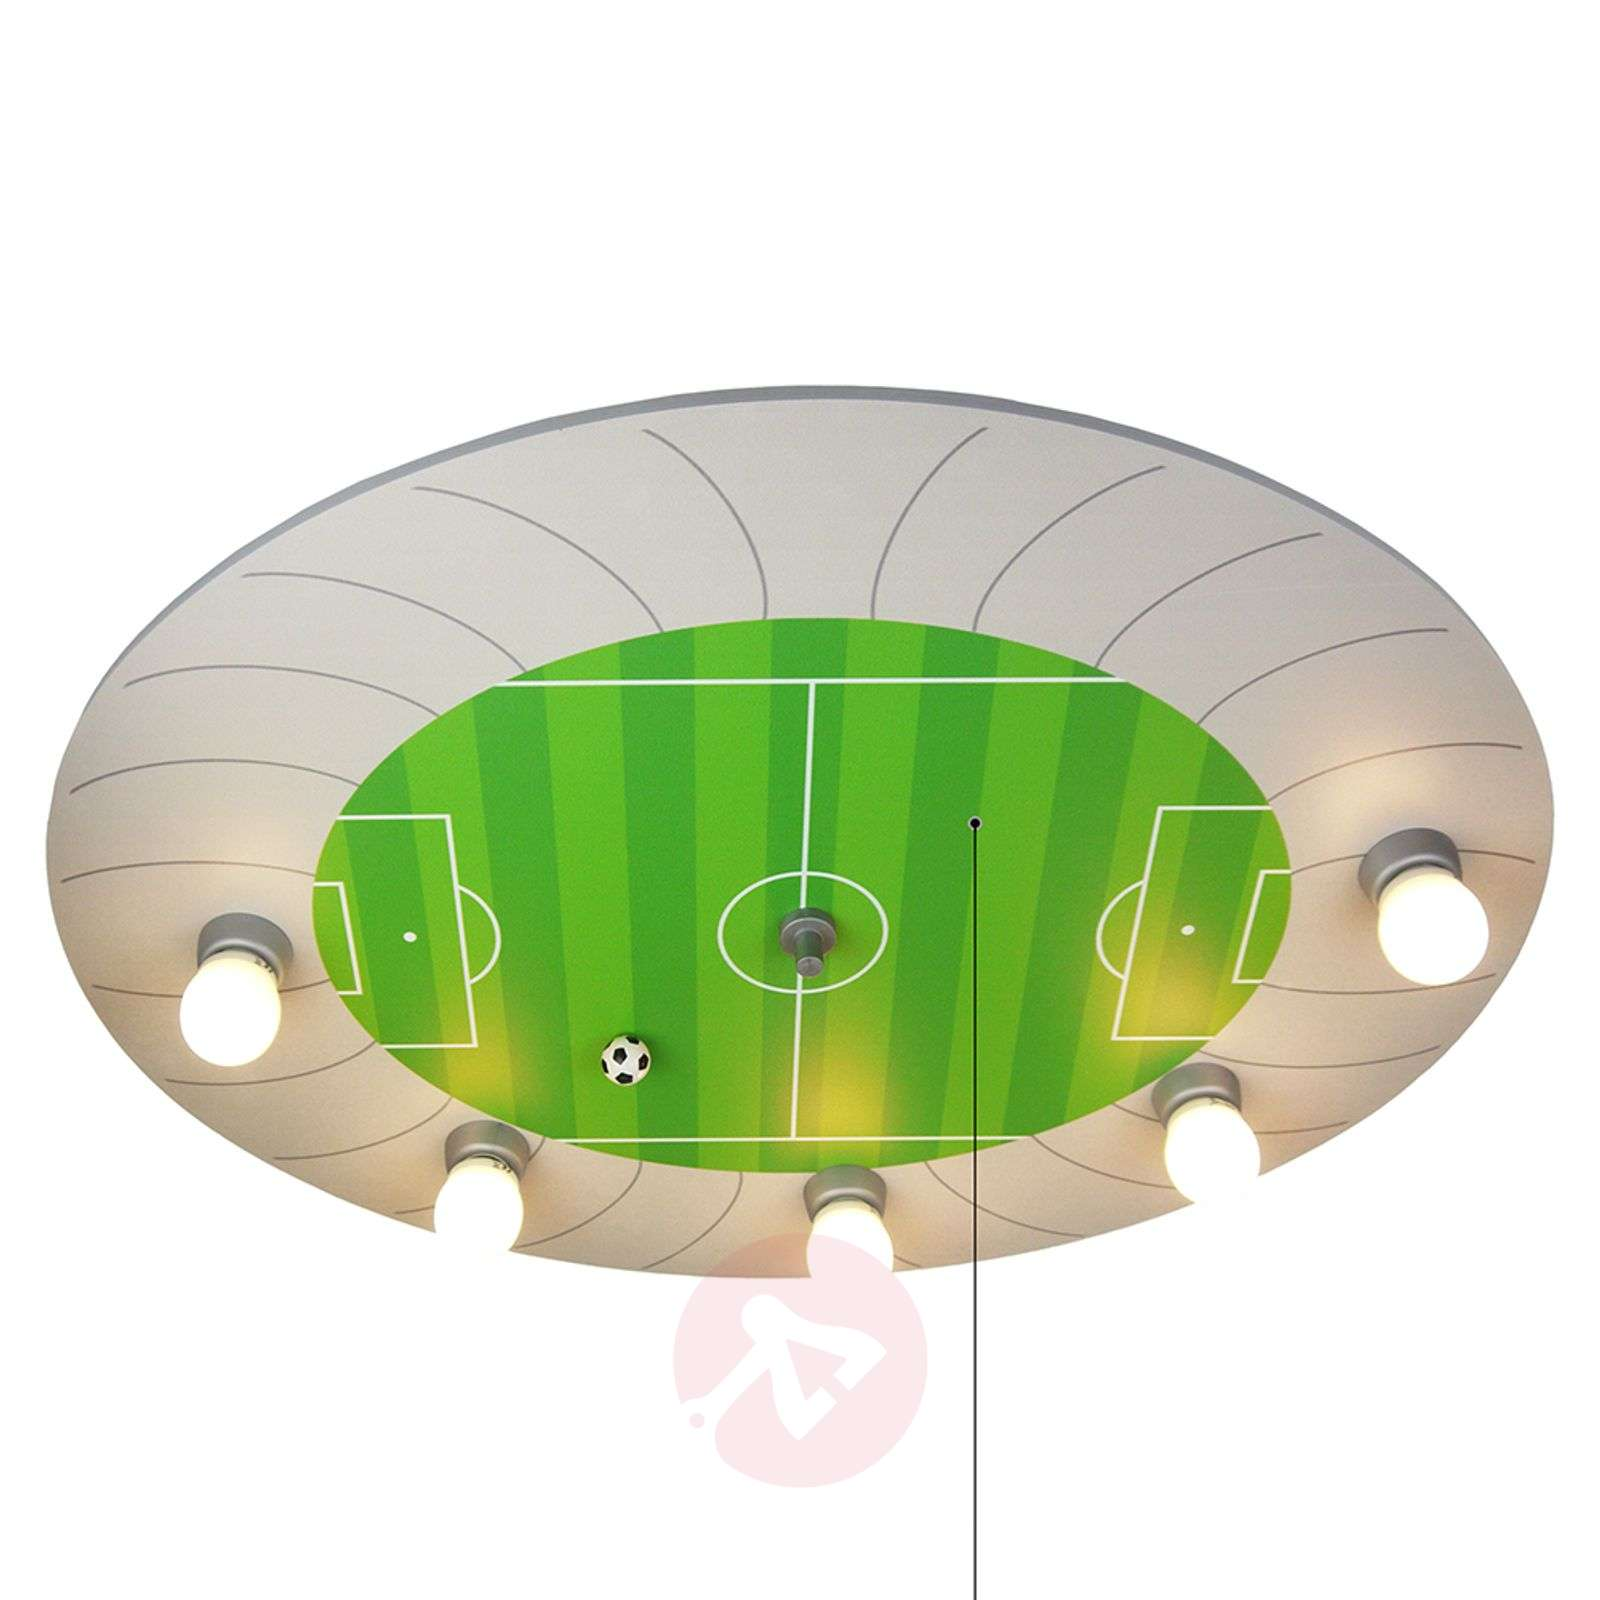 Football Stadium ceiling light with LEDs-5400256-01